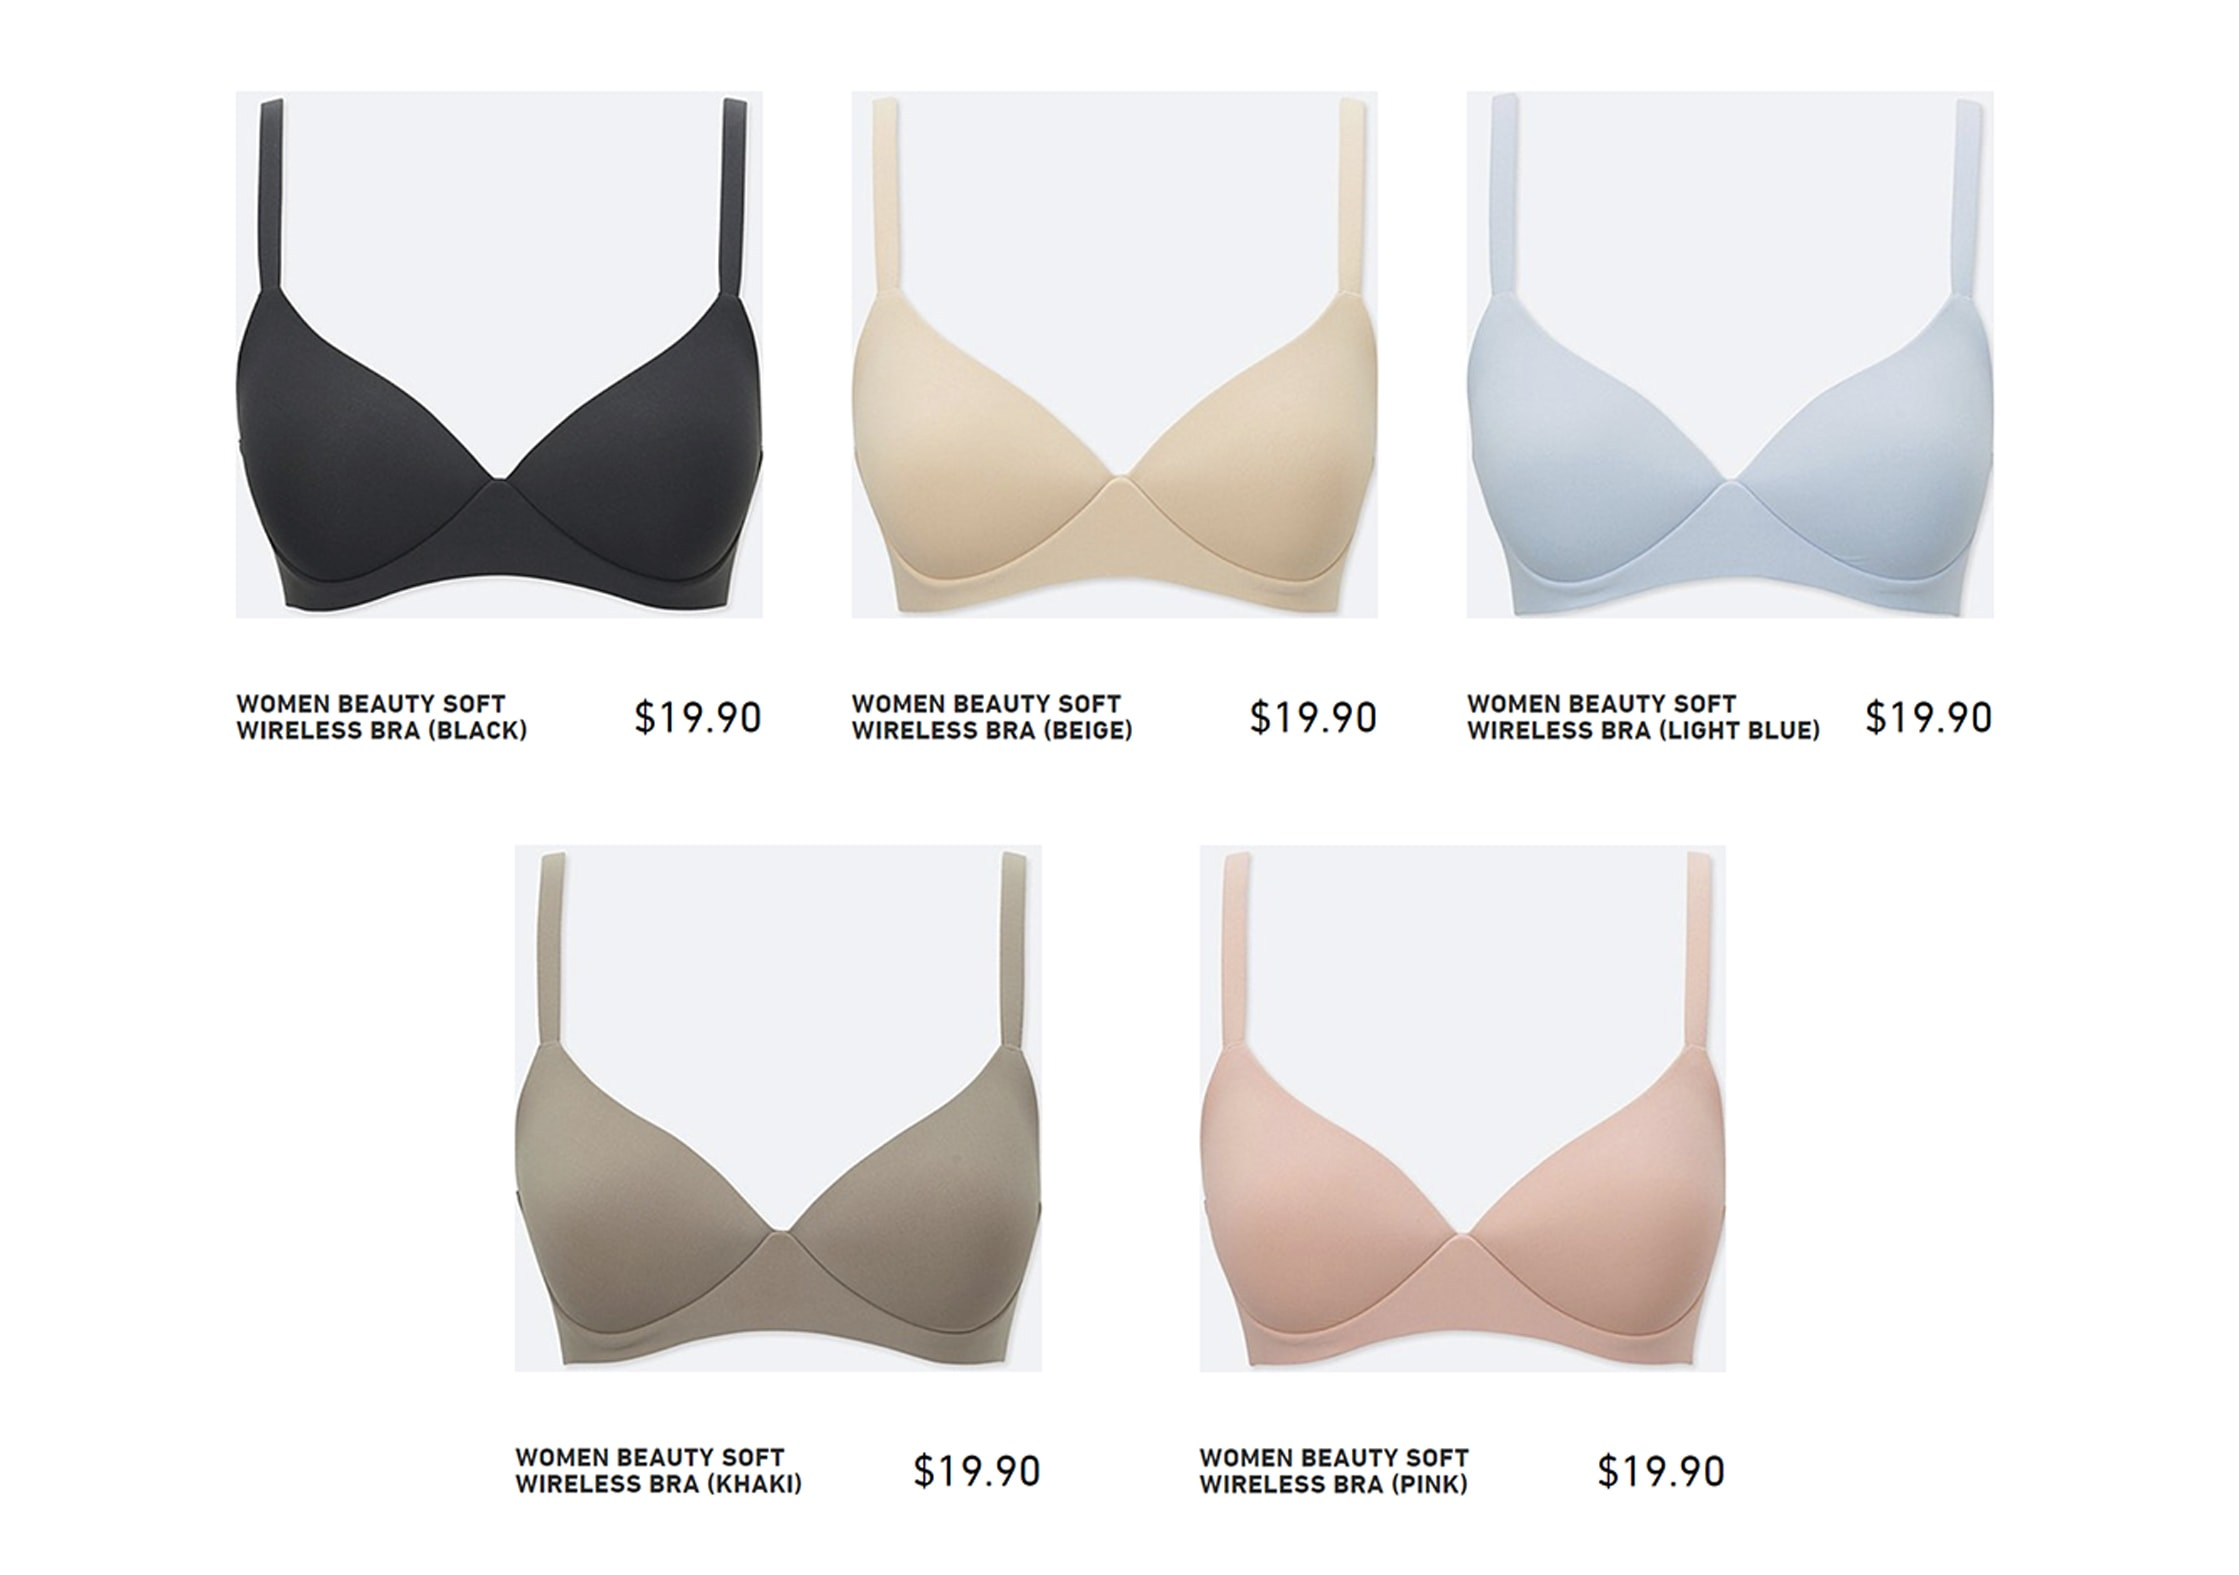 Uniqlo Wireless 'Beauty Soft' Bra Colors